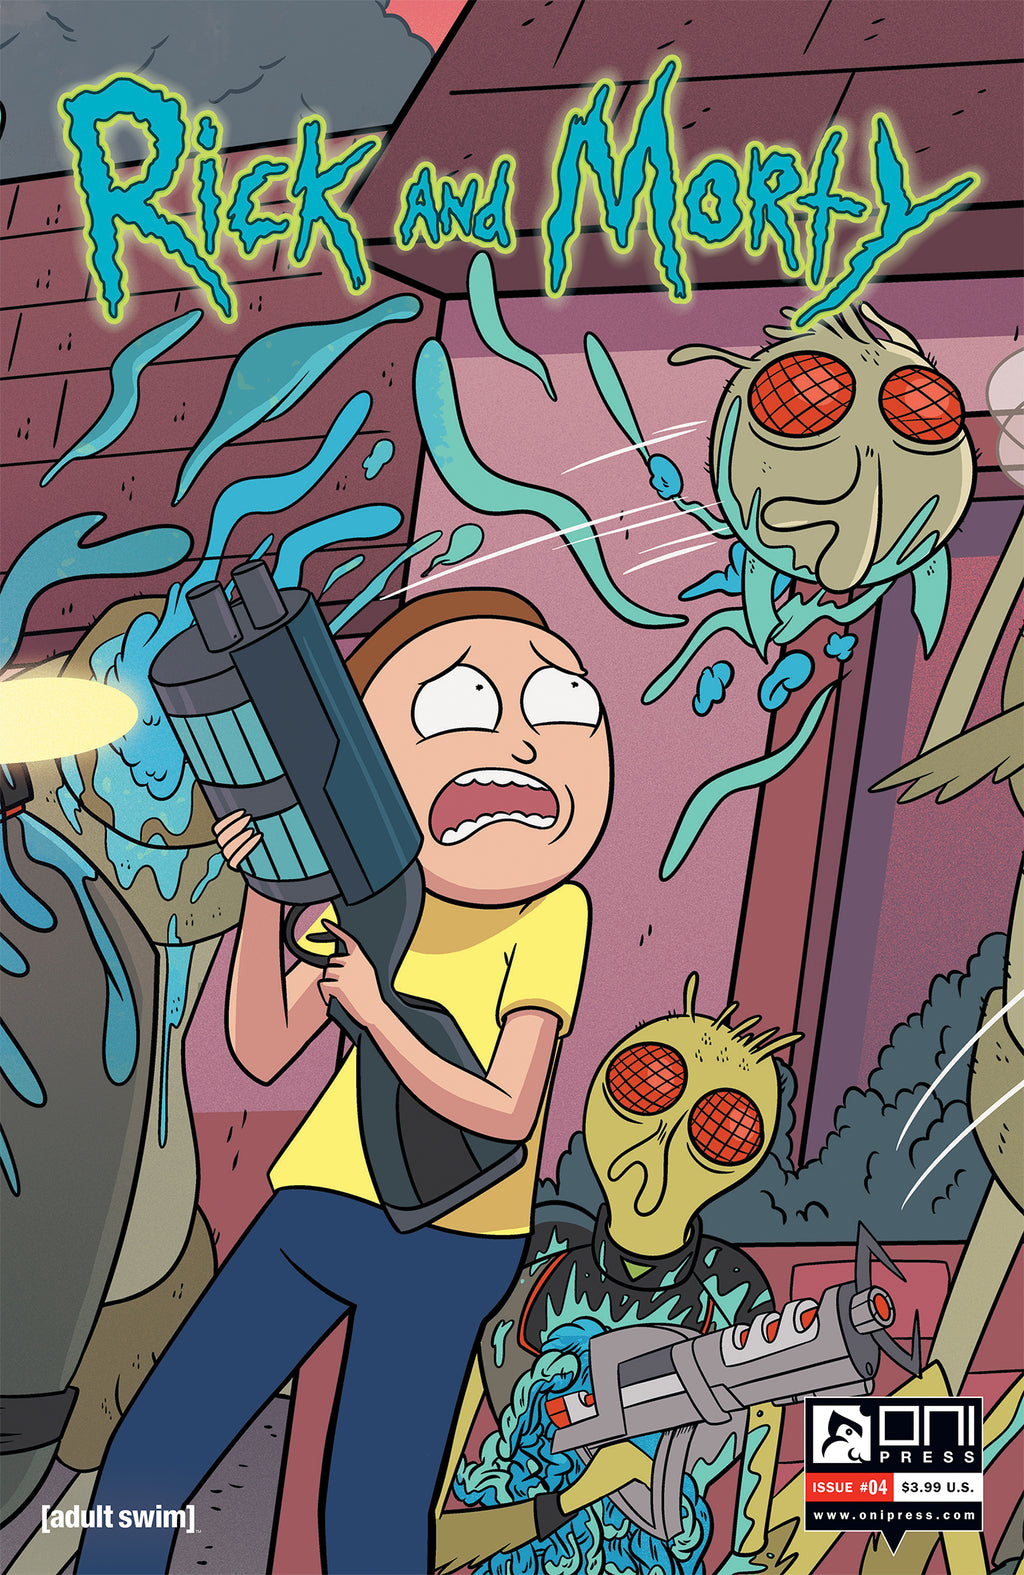 Rick and Morty #4 - Connecting Cover